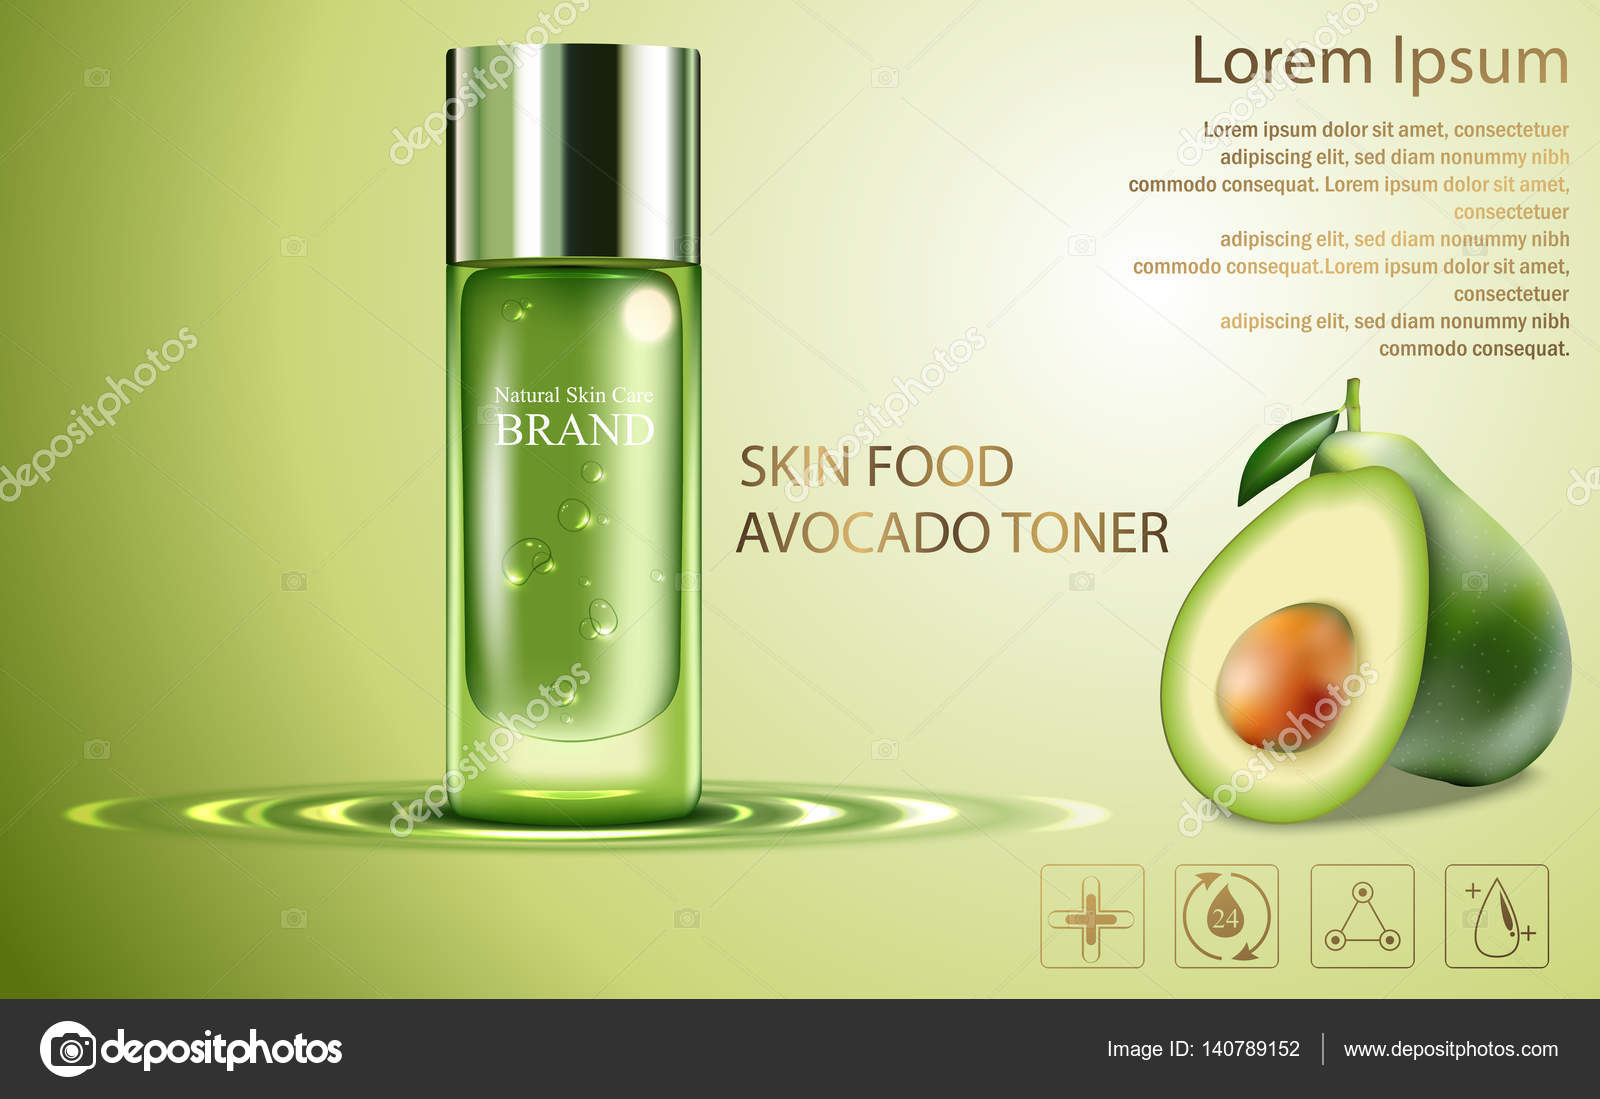 Beauty cosmetic product poster, fruit avocado cream ads with silver - product poster